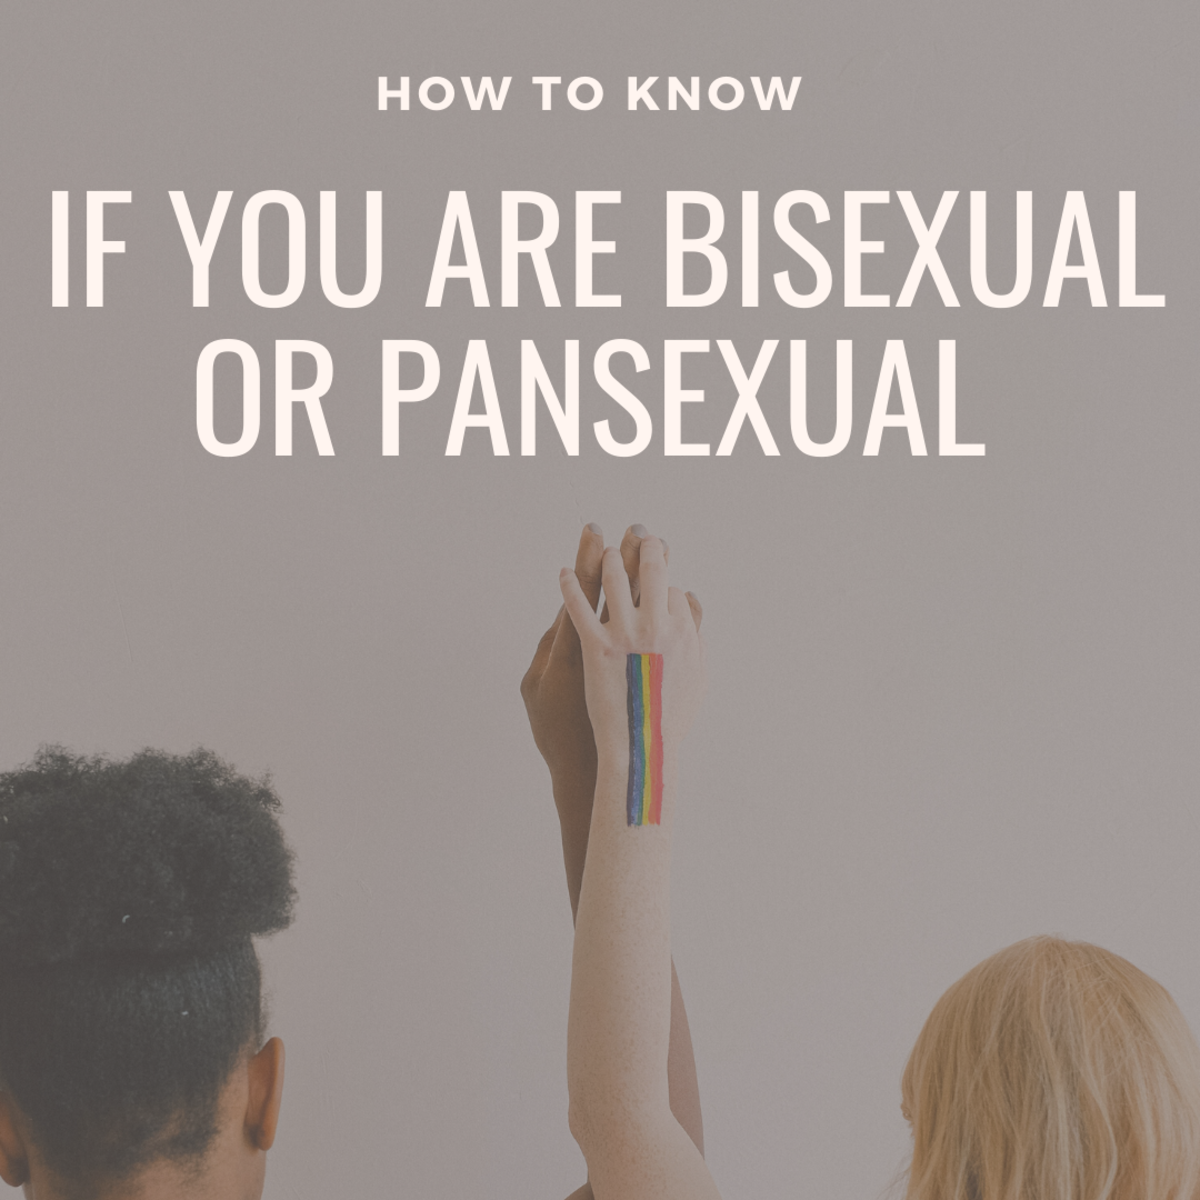 Read on to learn more about what it means to be bi and pan!